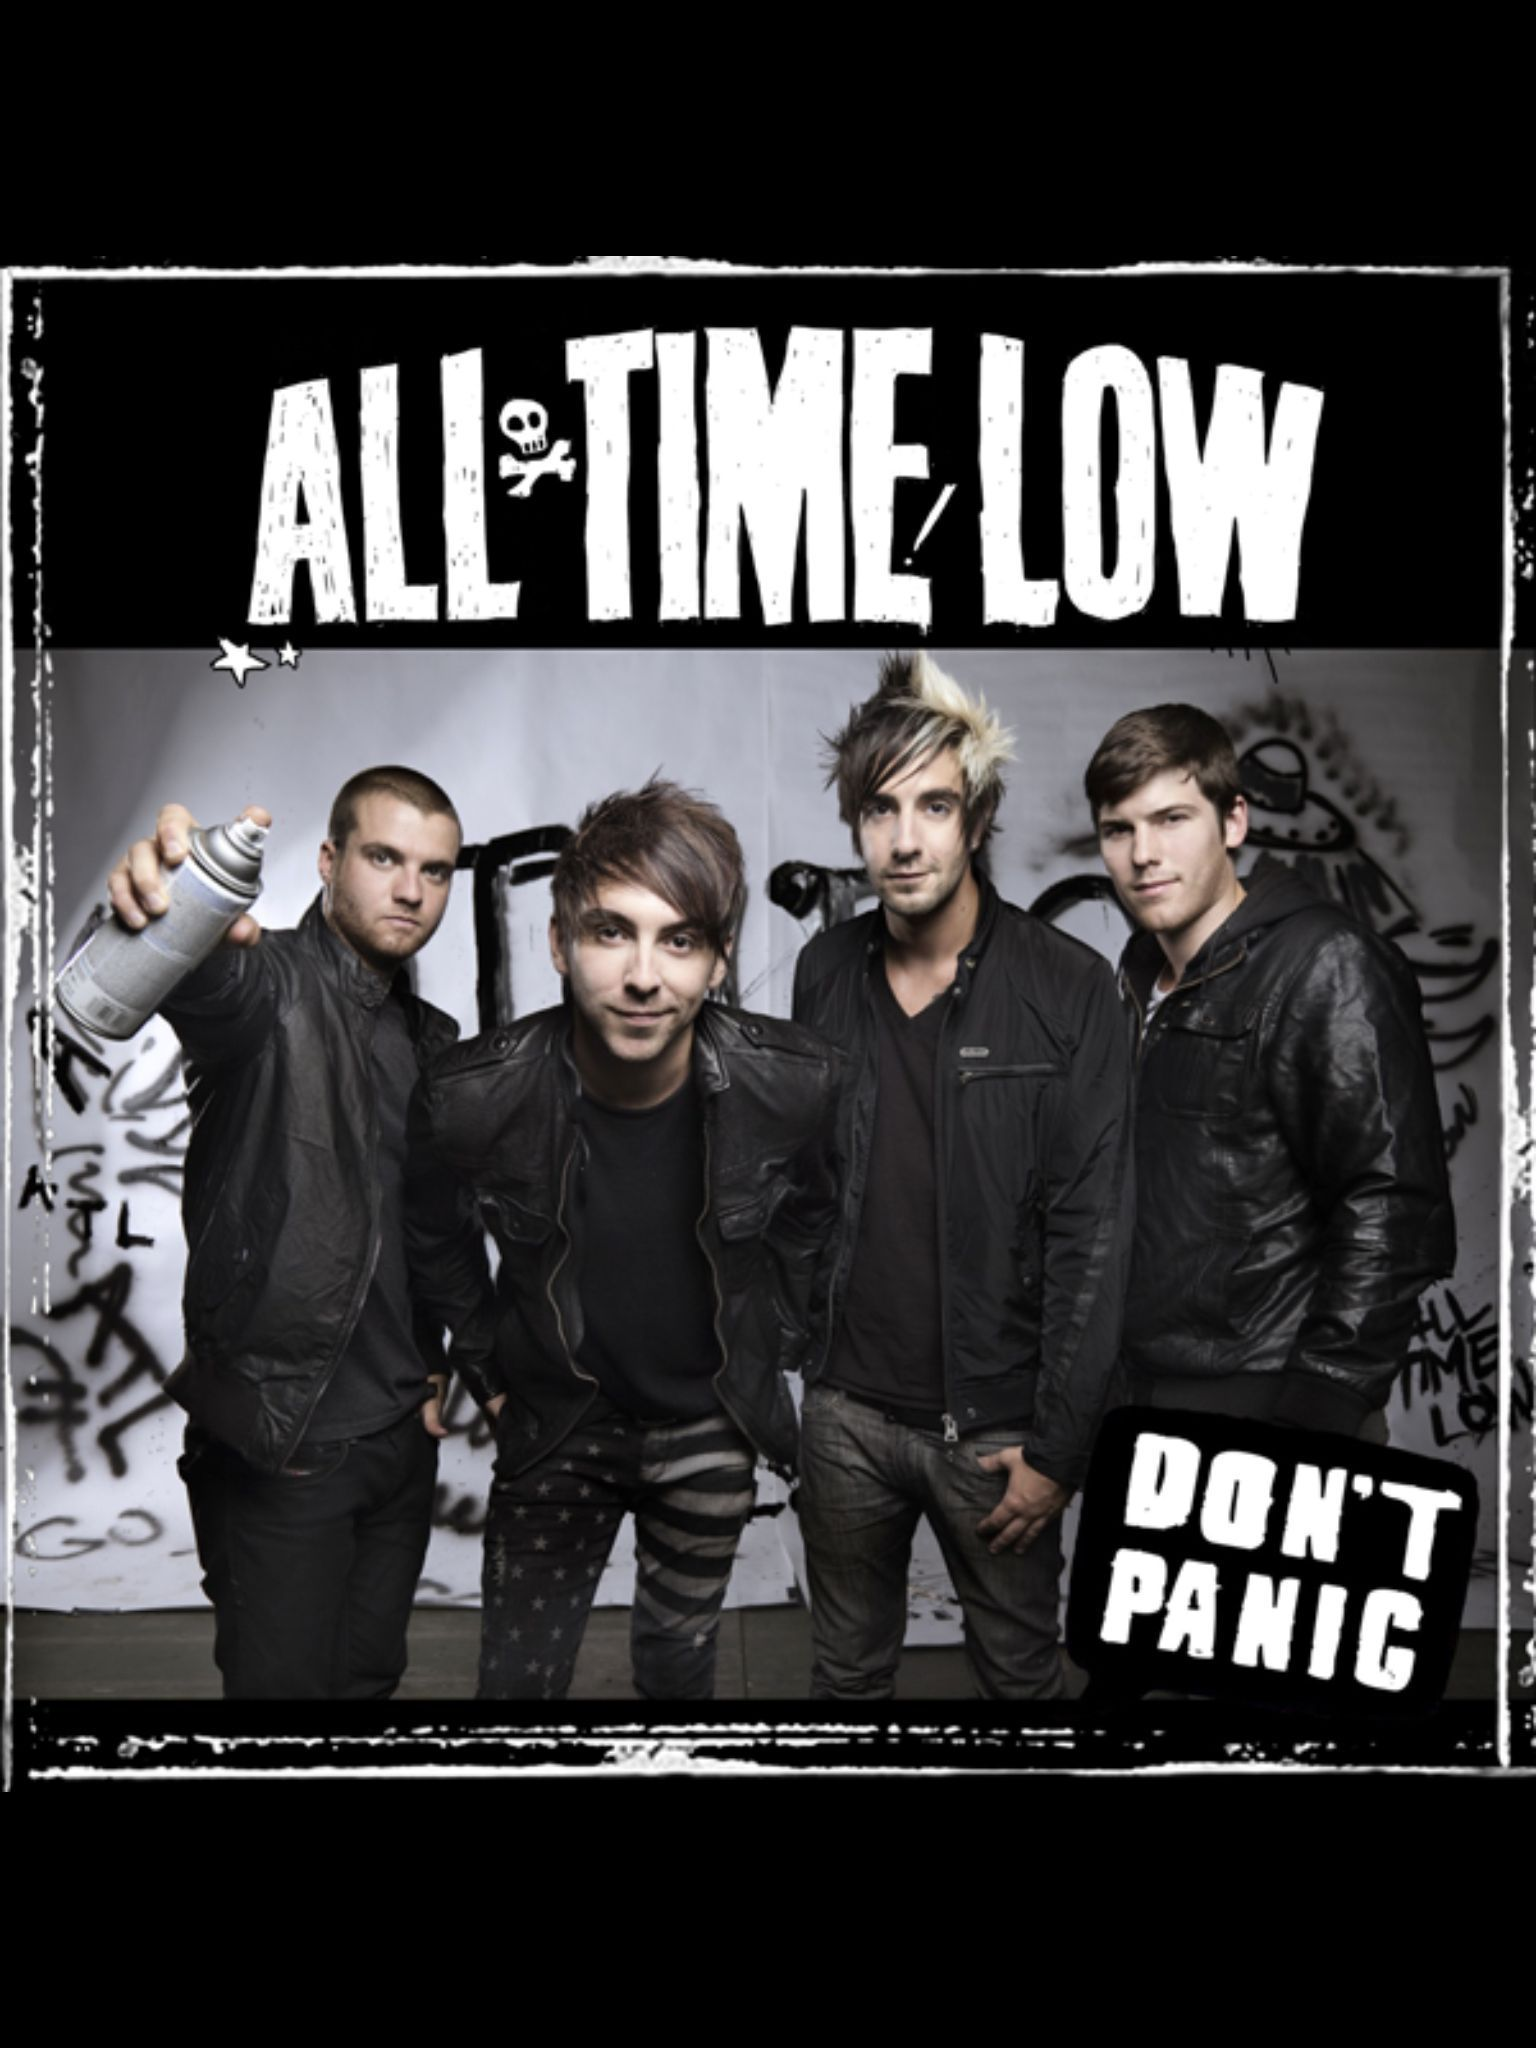 An alternative version of All Time Low's album Don't Panic #lowalbum An alternative version of All Time Low's album Don't Panic #lowalbum An alternative version of All Time Low's album Don't Panic #lowalbum An alternative version of All Time Low's album Don't Panic #lowalbum